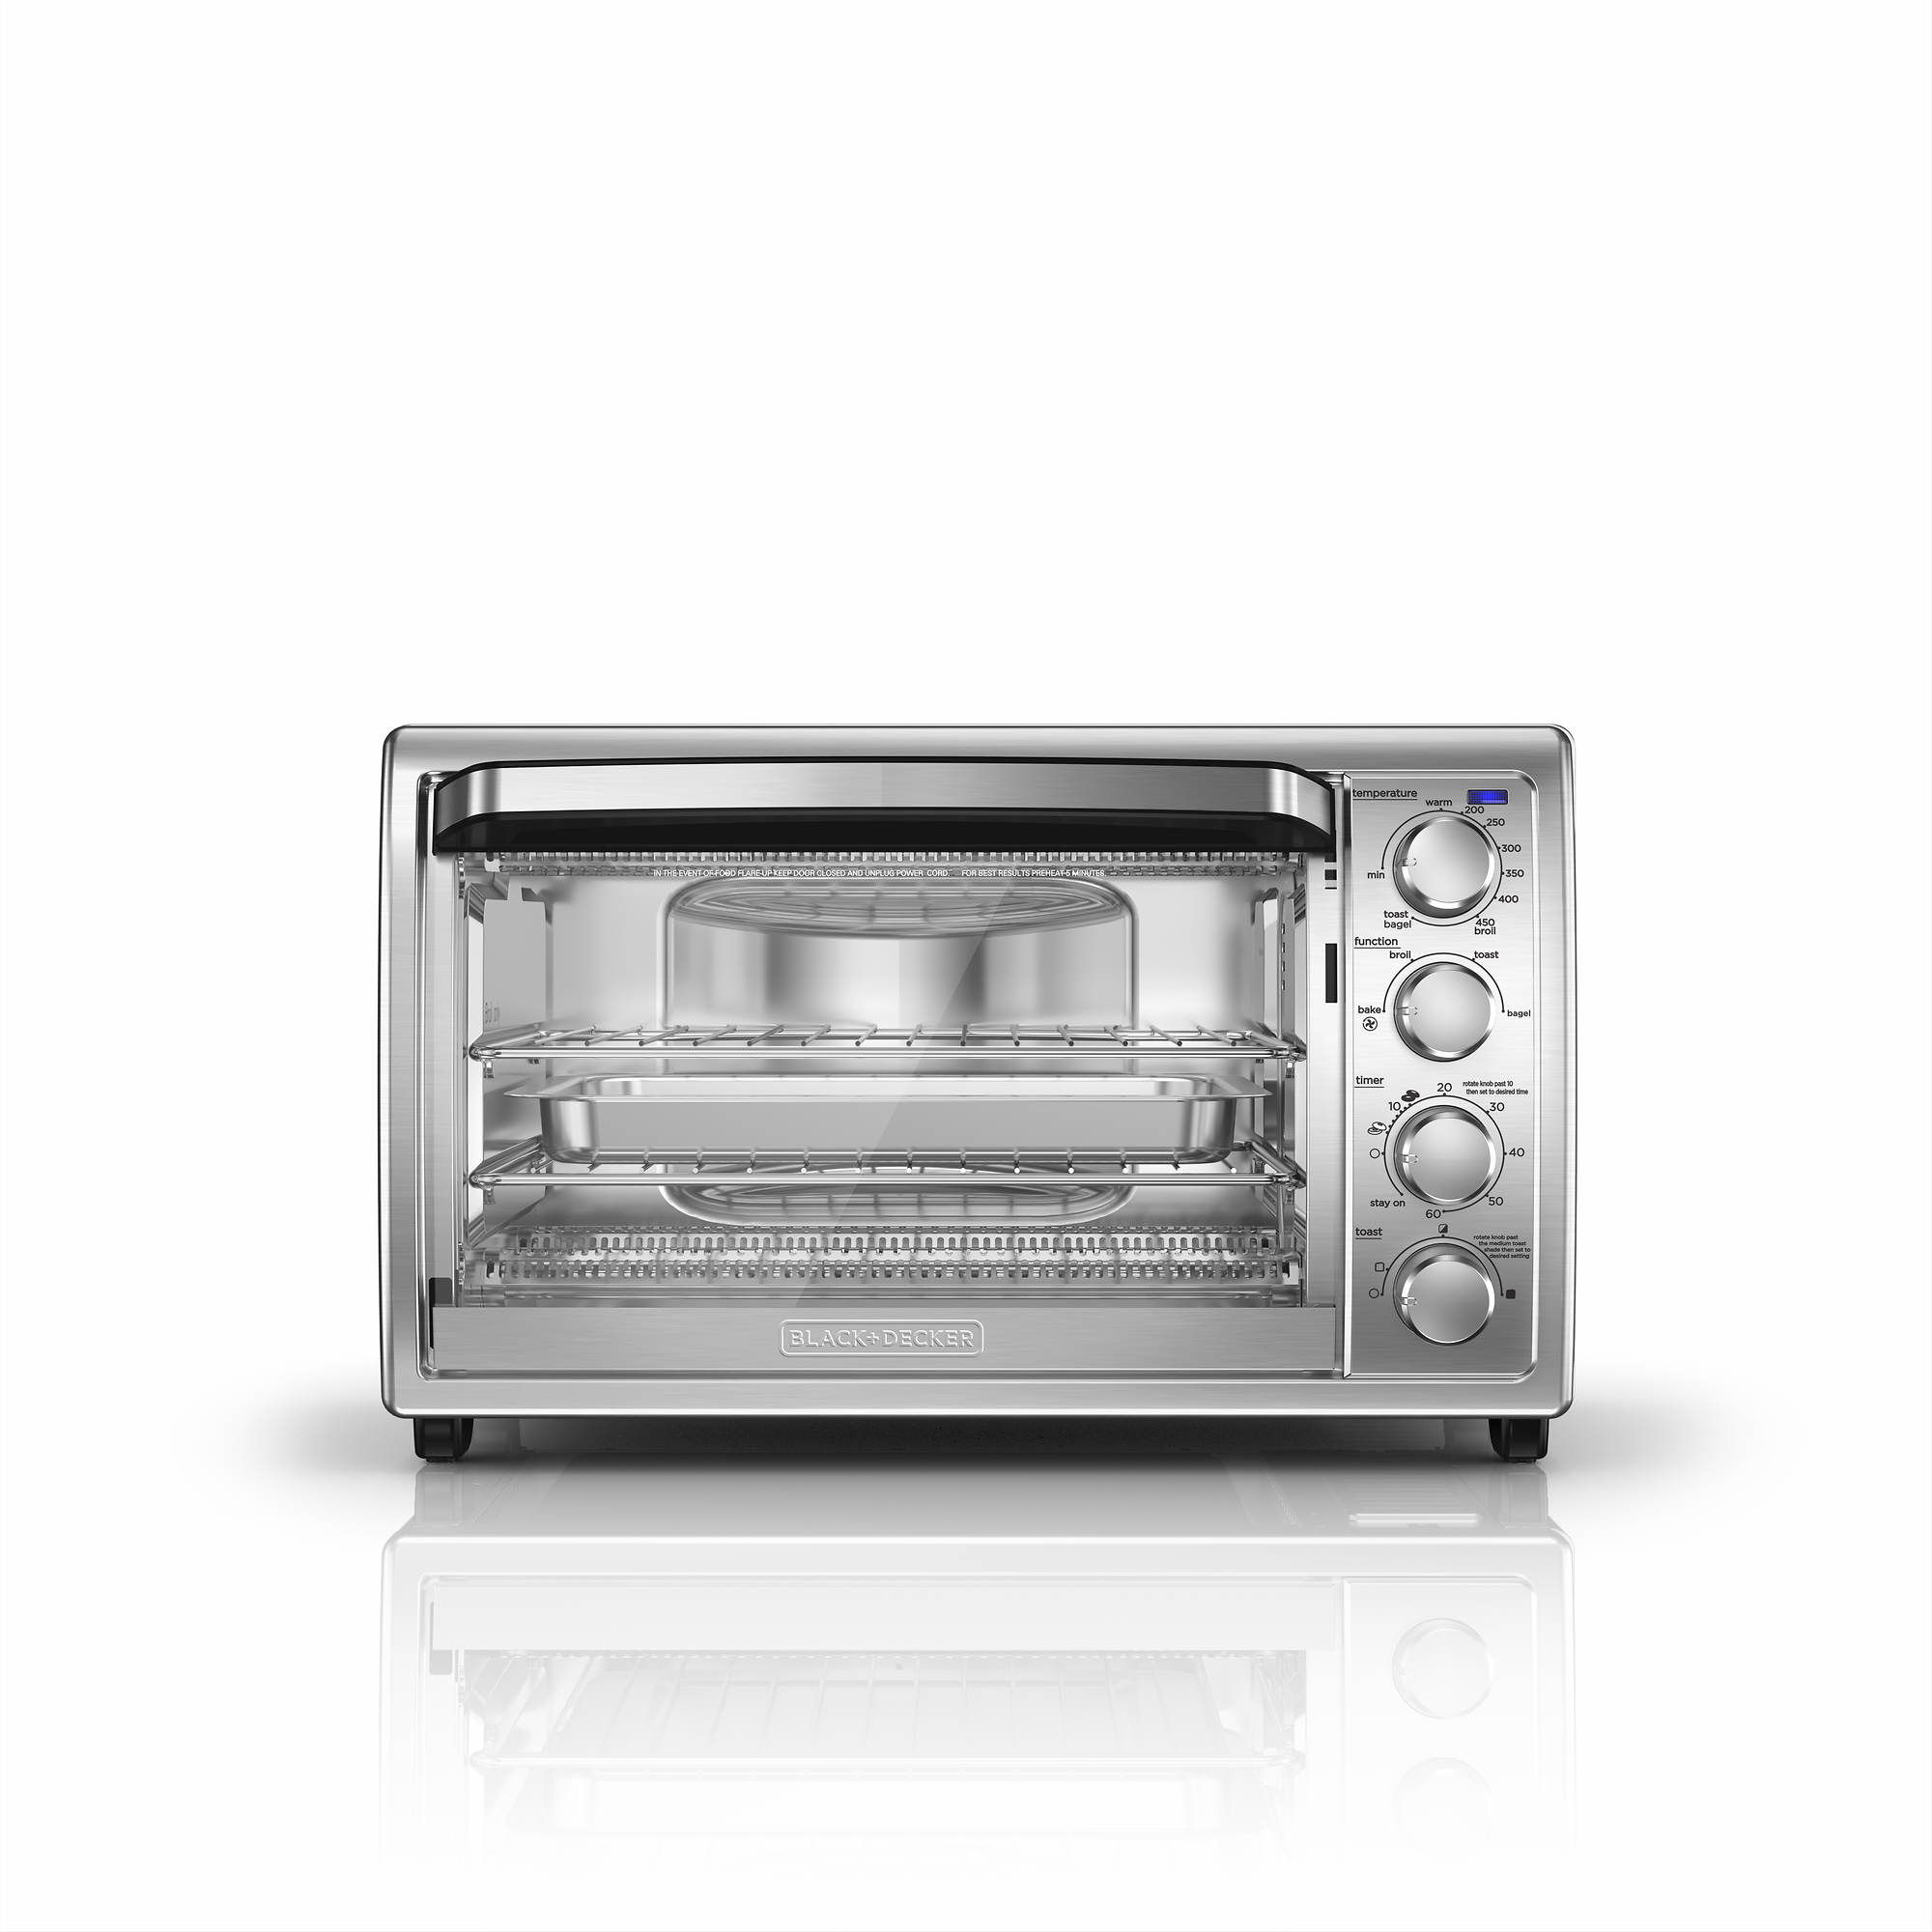 profile ft requesttype ge cu appliance dispatcher gea product large convection specs image name countertop oven series microwave countertops